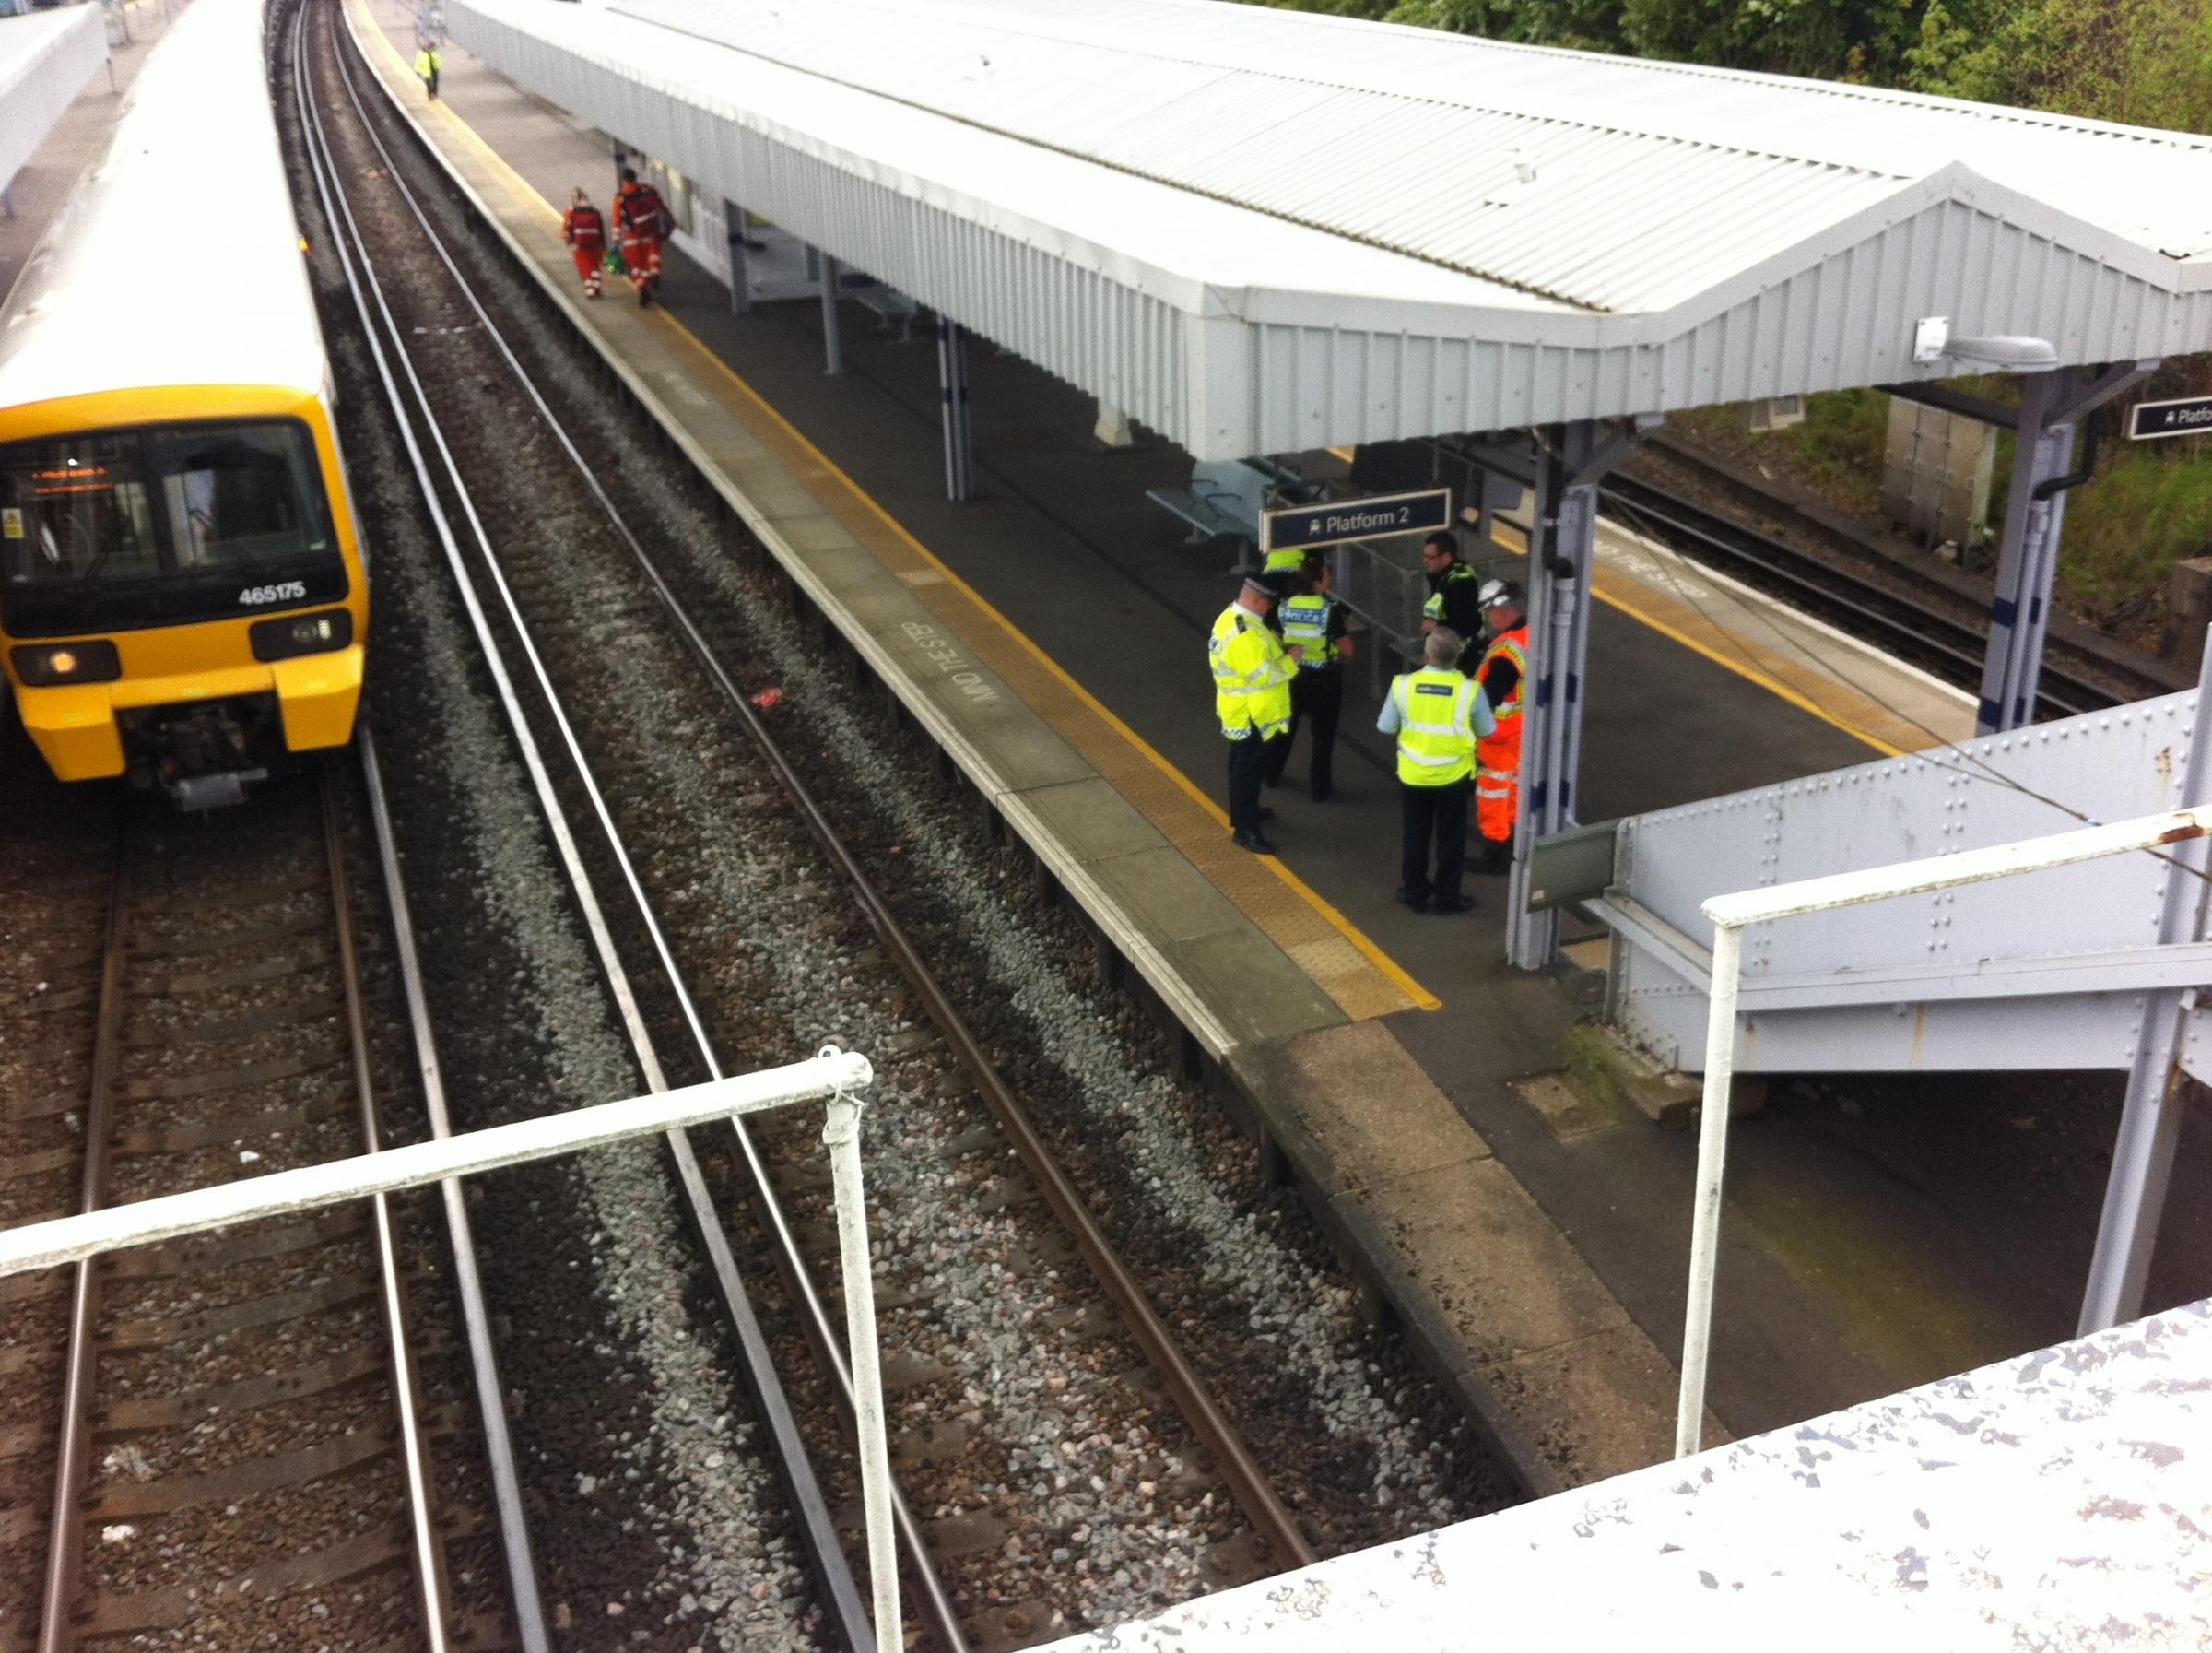 UPDATE: Woman dead after being struck by train at Petts Wood station